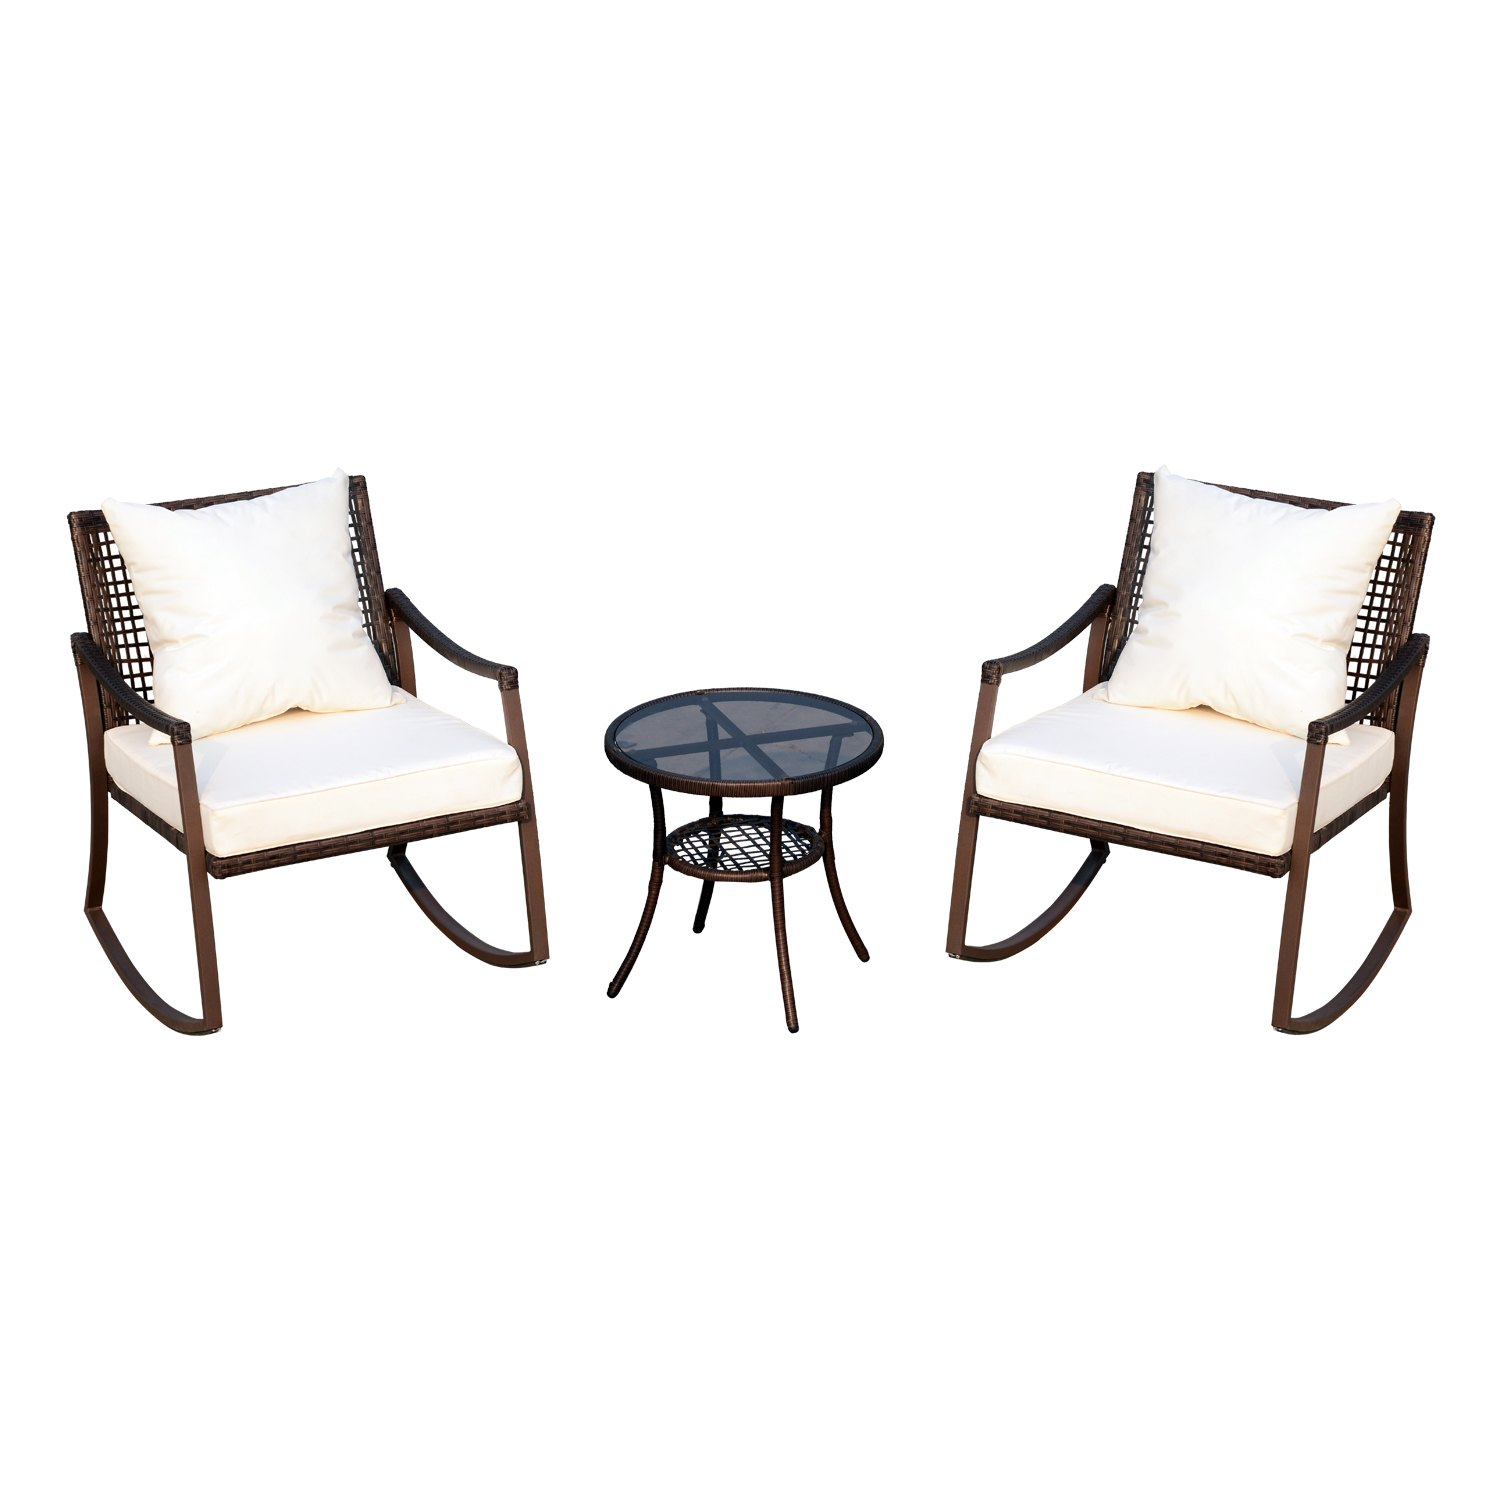 aosom outsunny piece outdoor rattan wicker patio accent table rocking chair set with nite stands furniture pottery barn small umbrella hole groups antique style reclaimed wood